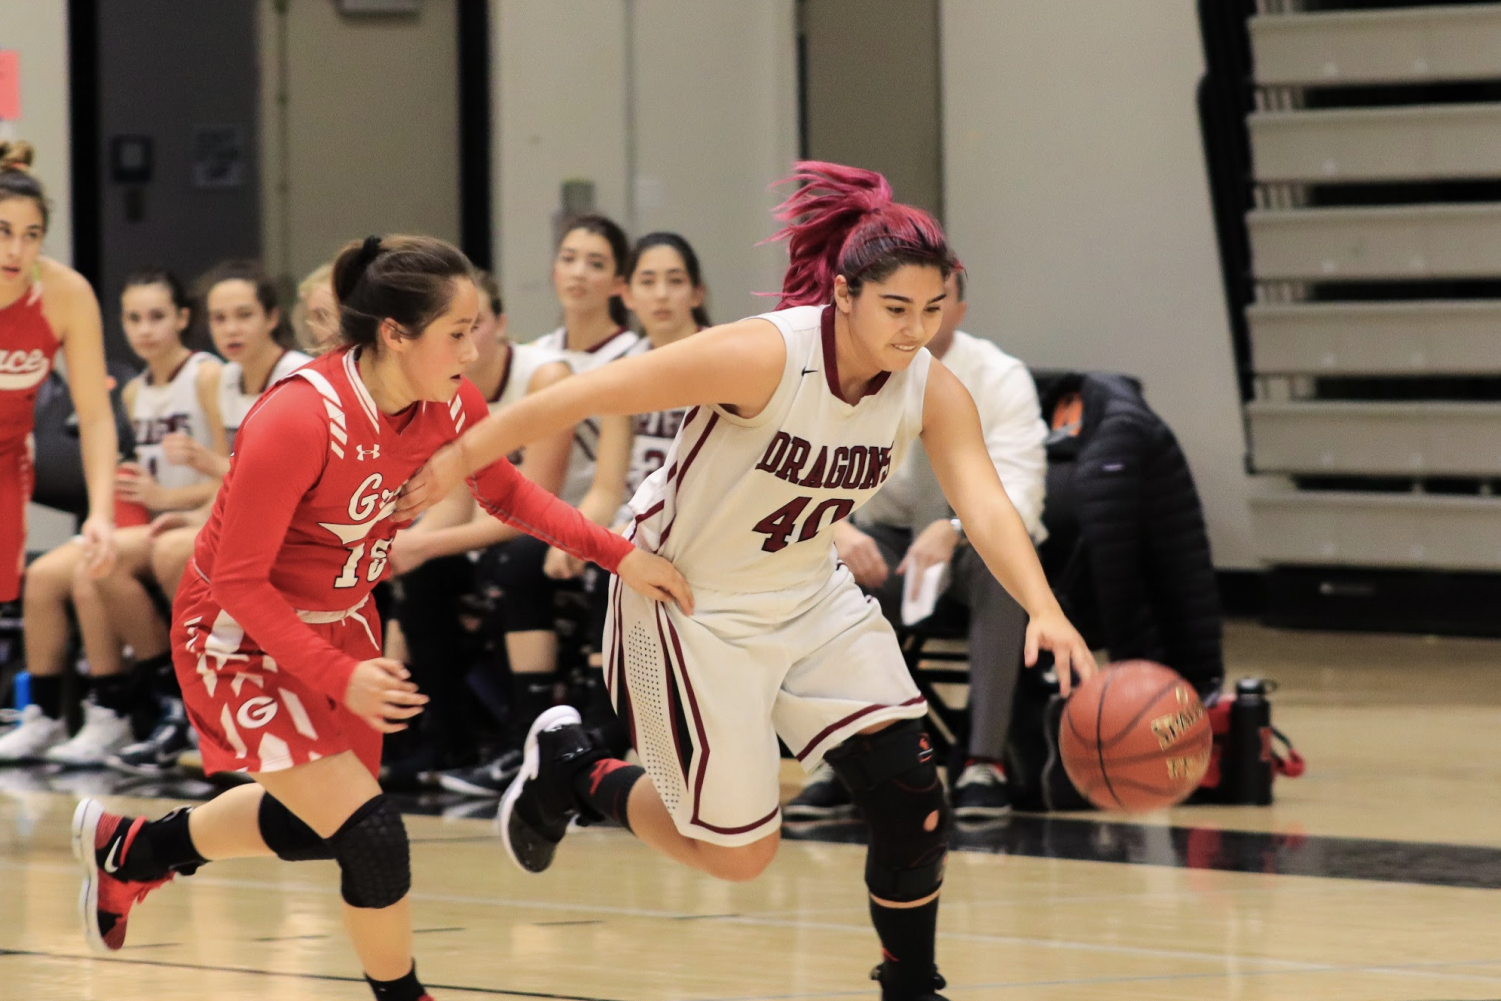 Cydnie Gutierrez blows by Grace Brethren player Kayla Hernandez '19. Credit: Claire Renar / The Foothill Dragon Press